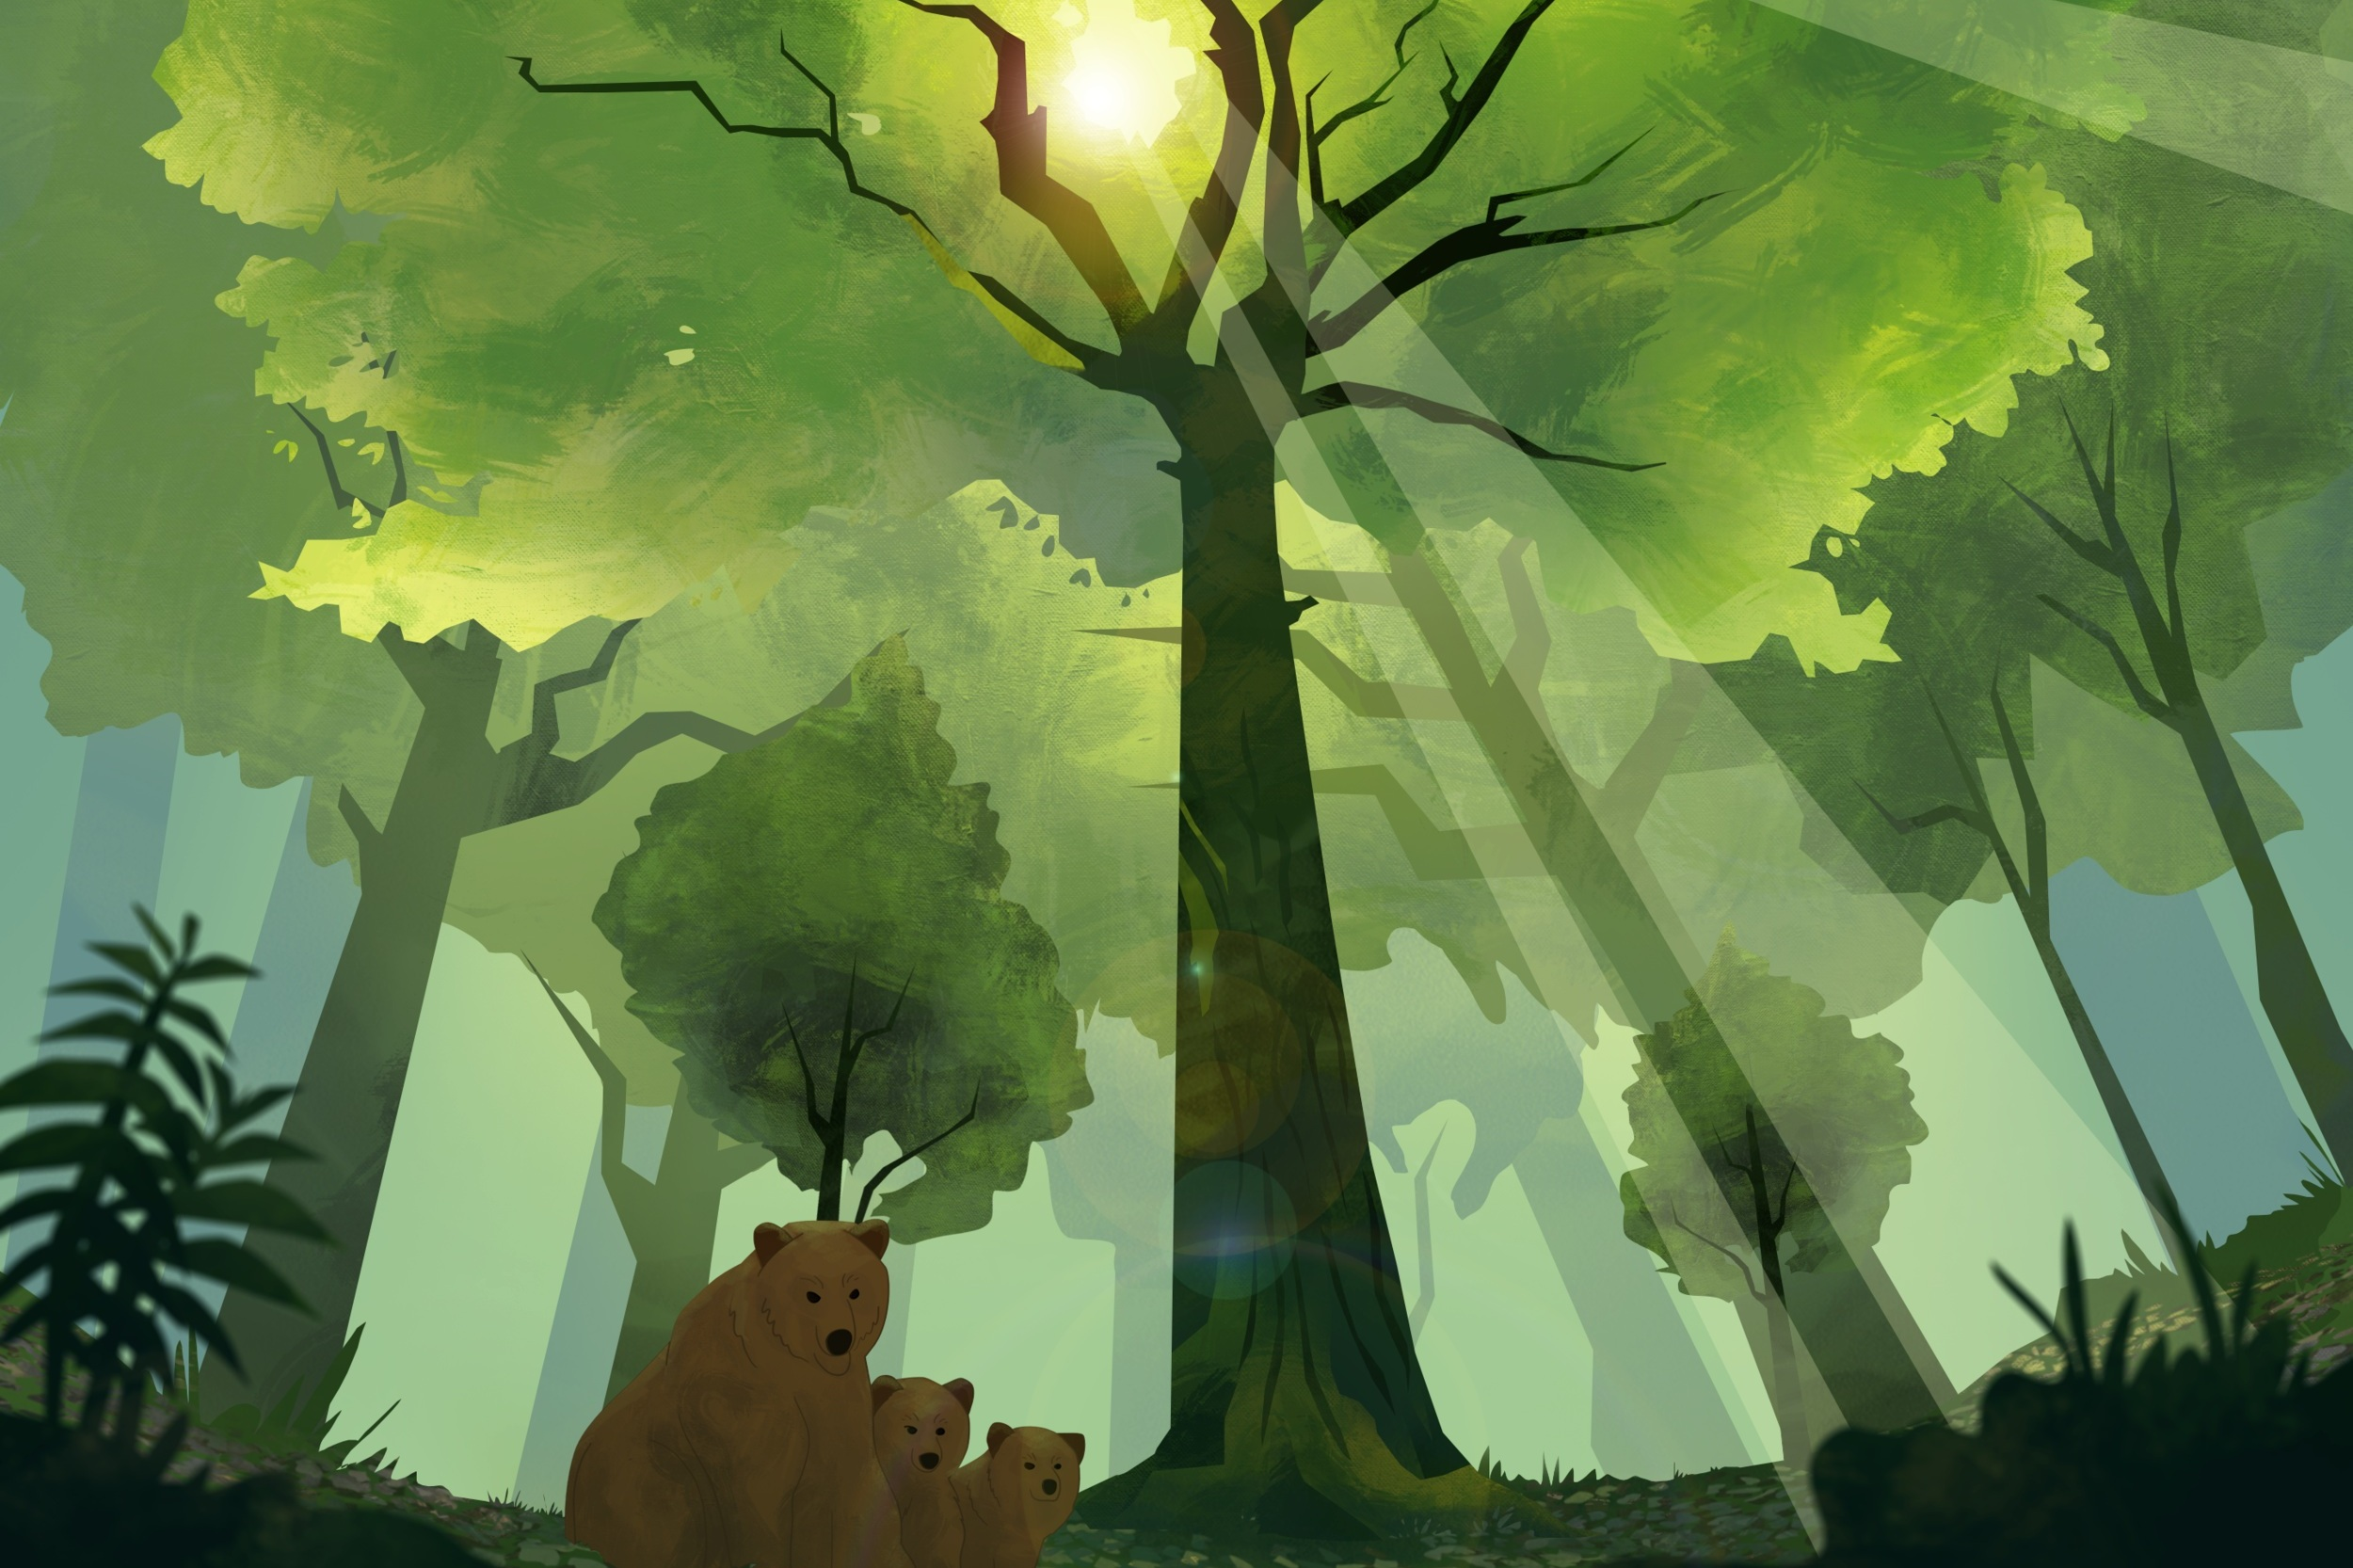 """The Healthiest Forest - A short educational animated video written by forest ecologist Dr. Joan Maloof, """"The Healthiest Forest"""" explains the importance of leaving forests unmanaged so they can achieve old-growth status.This is a wonderful introduction for students, foresters, private forest owners, land & forest trusts, and anyone interested in sustainable forestry. Learn a lot in under five minutes!"""